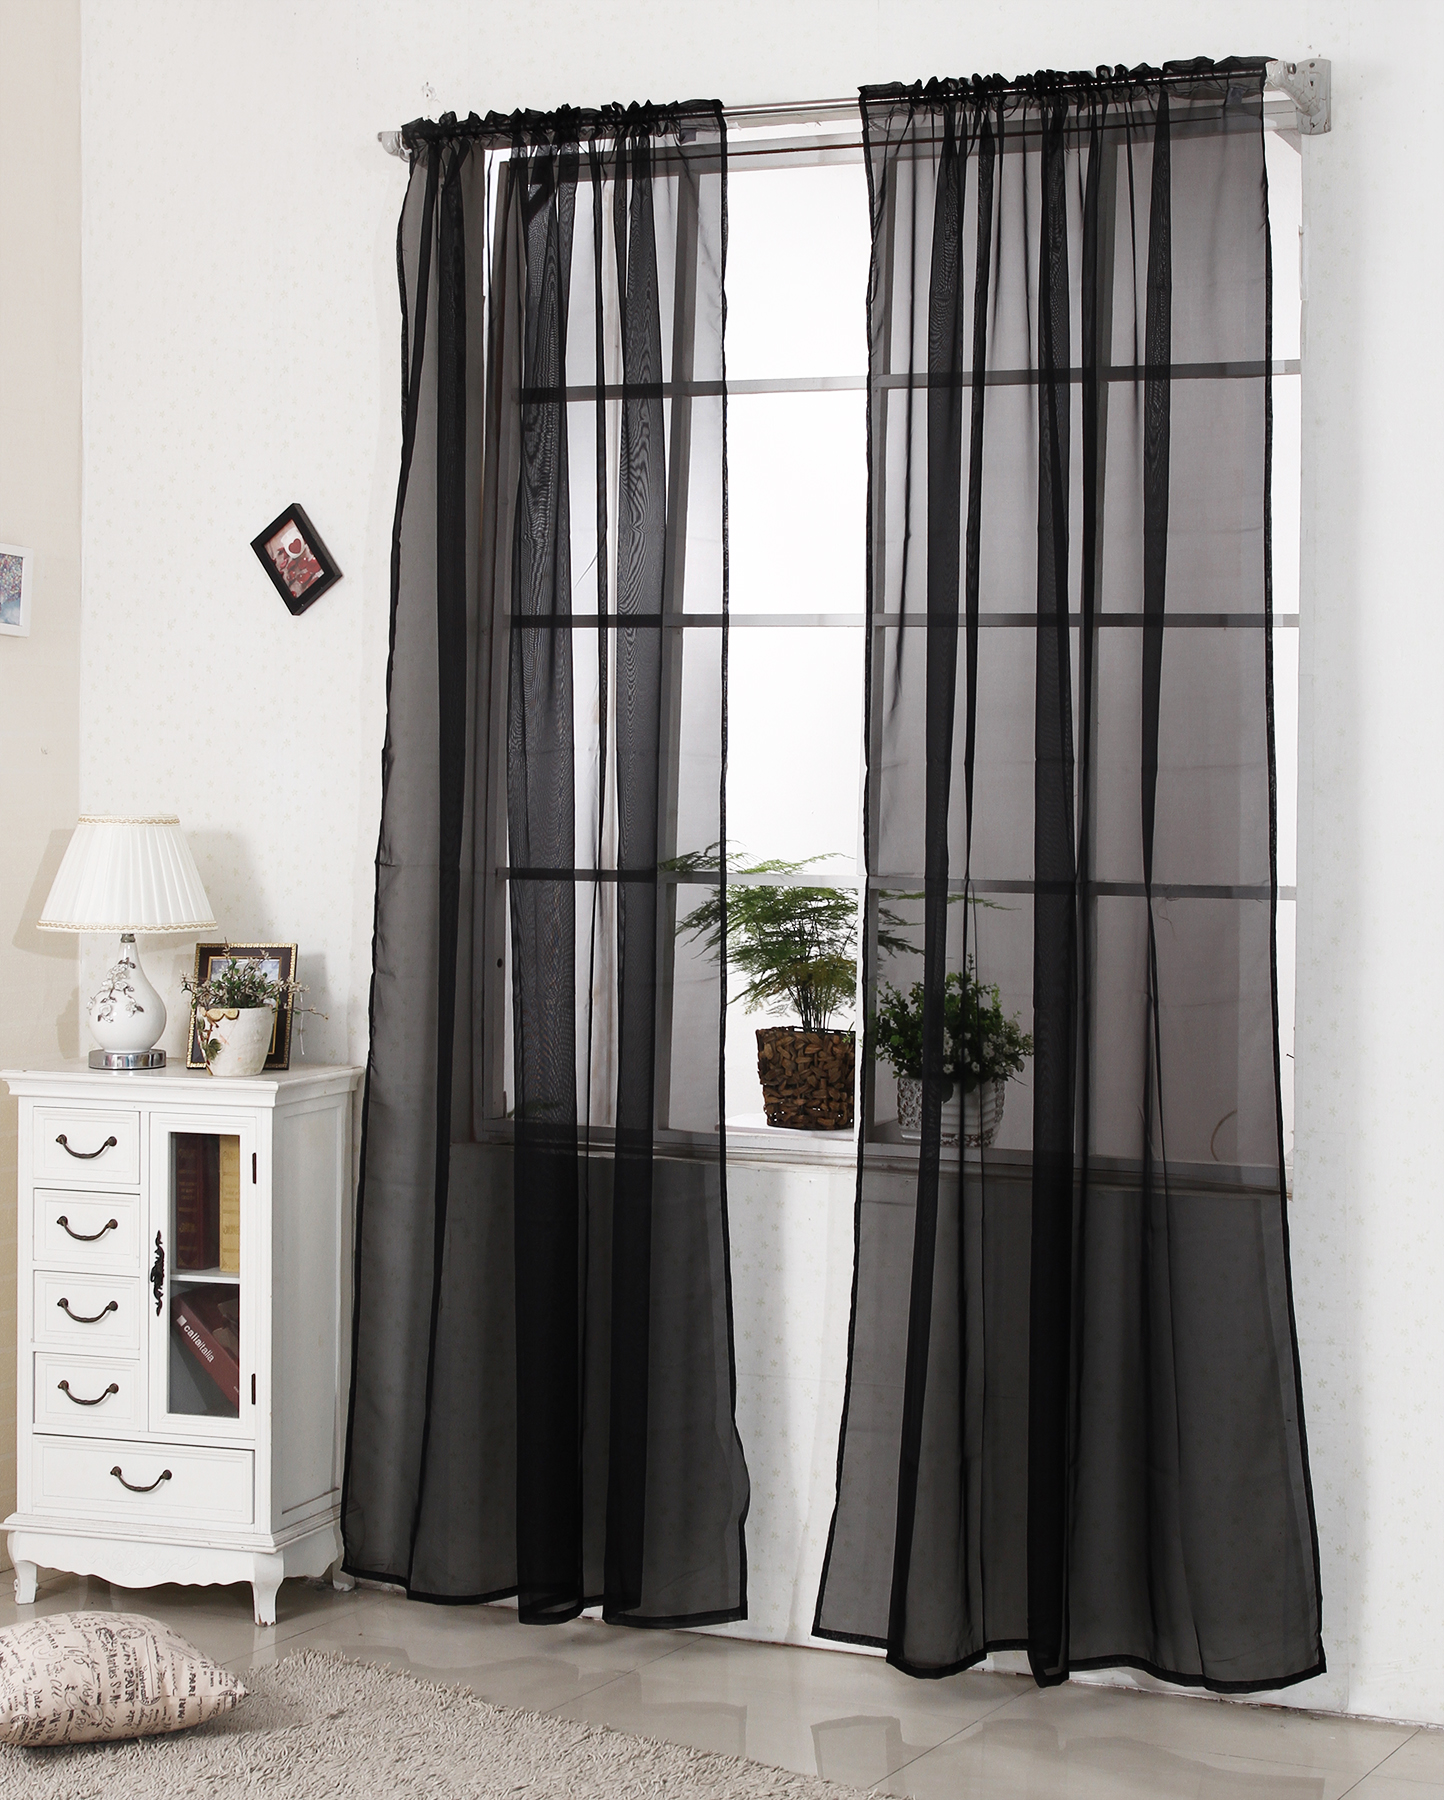 gardinen stores angebote auf waterige. Black Bedroom Furniture Sets. Home Design Ideas